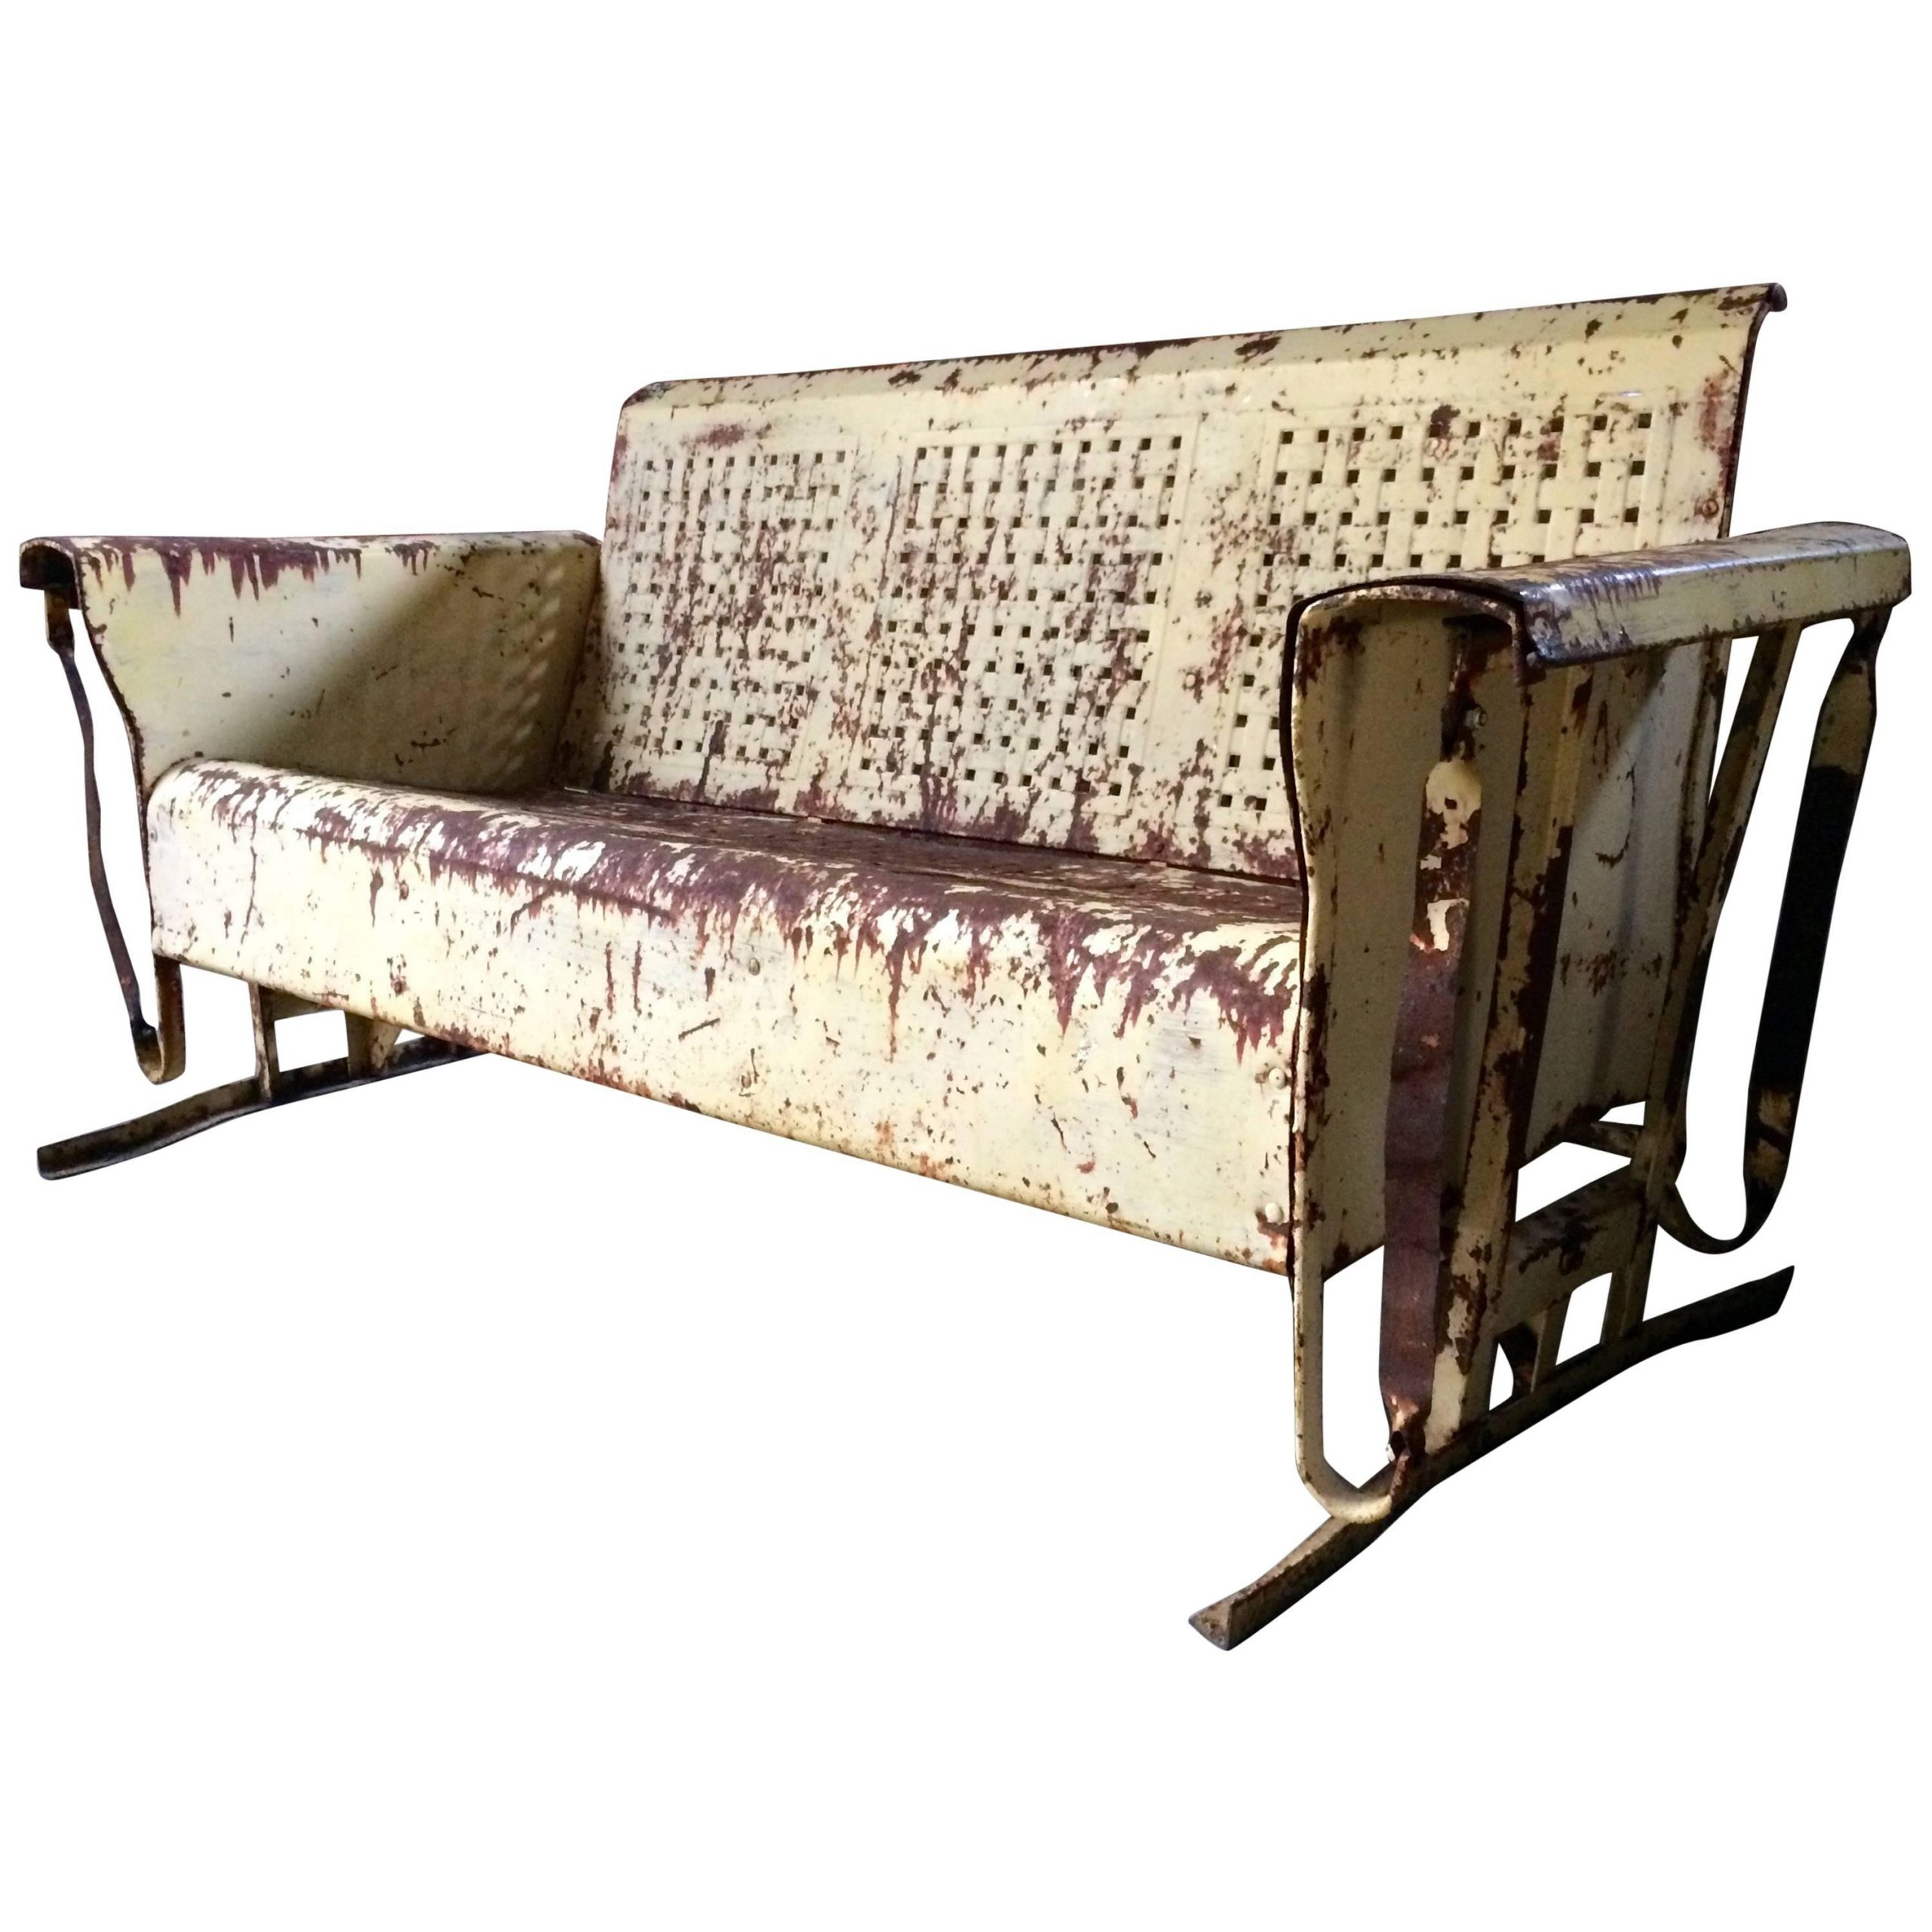 Widely Used Steel Patio Swing Glider Benches With Vintage Metal Porch Glider Garden Swing Bench French Painted (View 17 of 25)